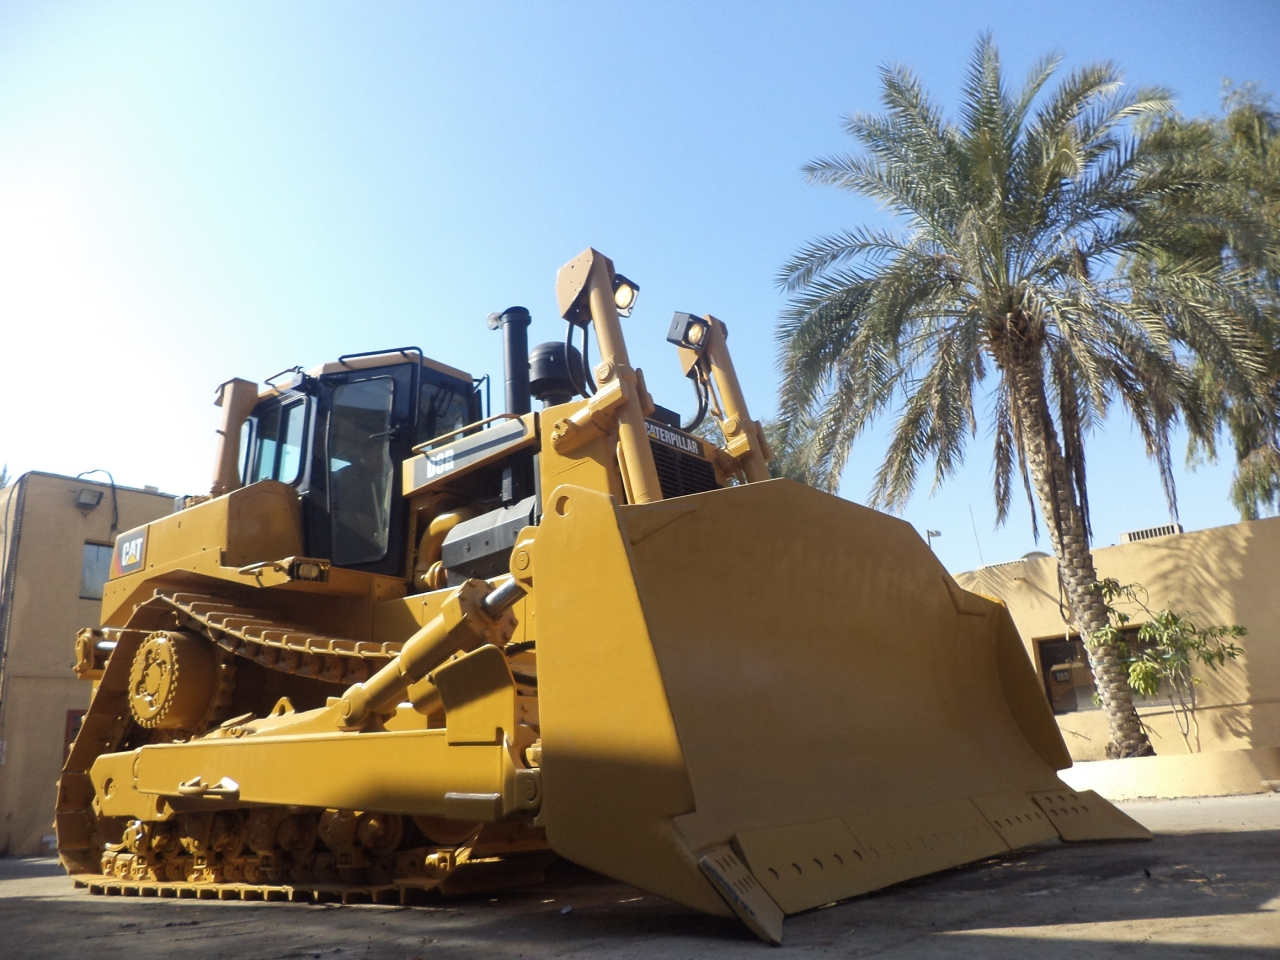 CATERPILLAR D8R SERIES II (940)